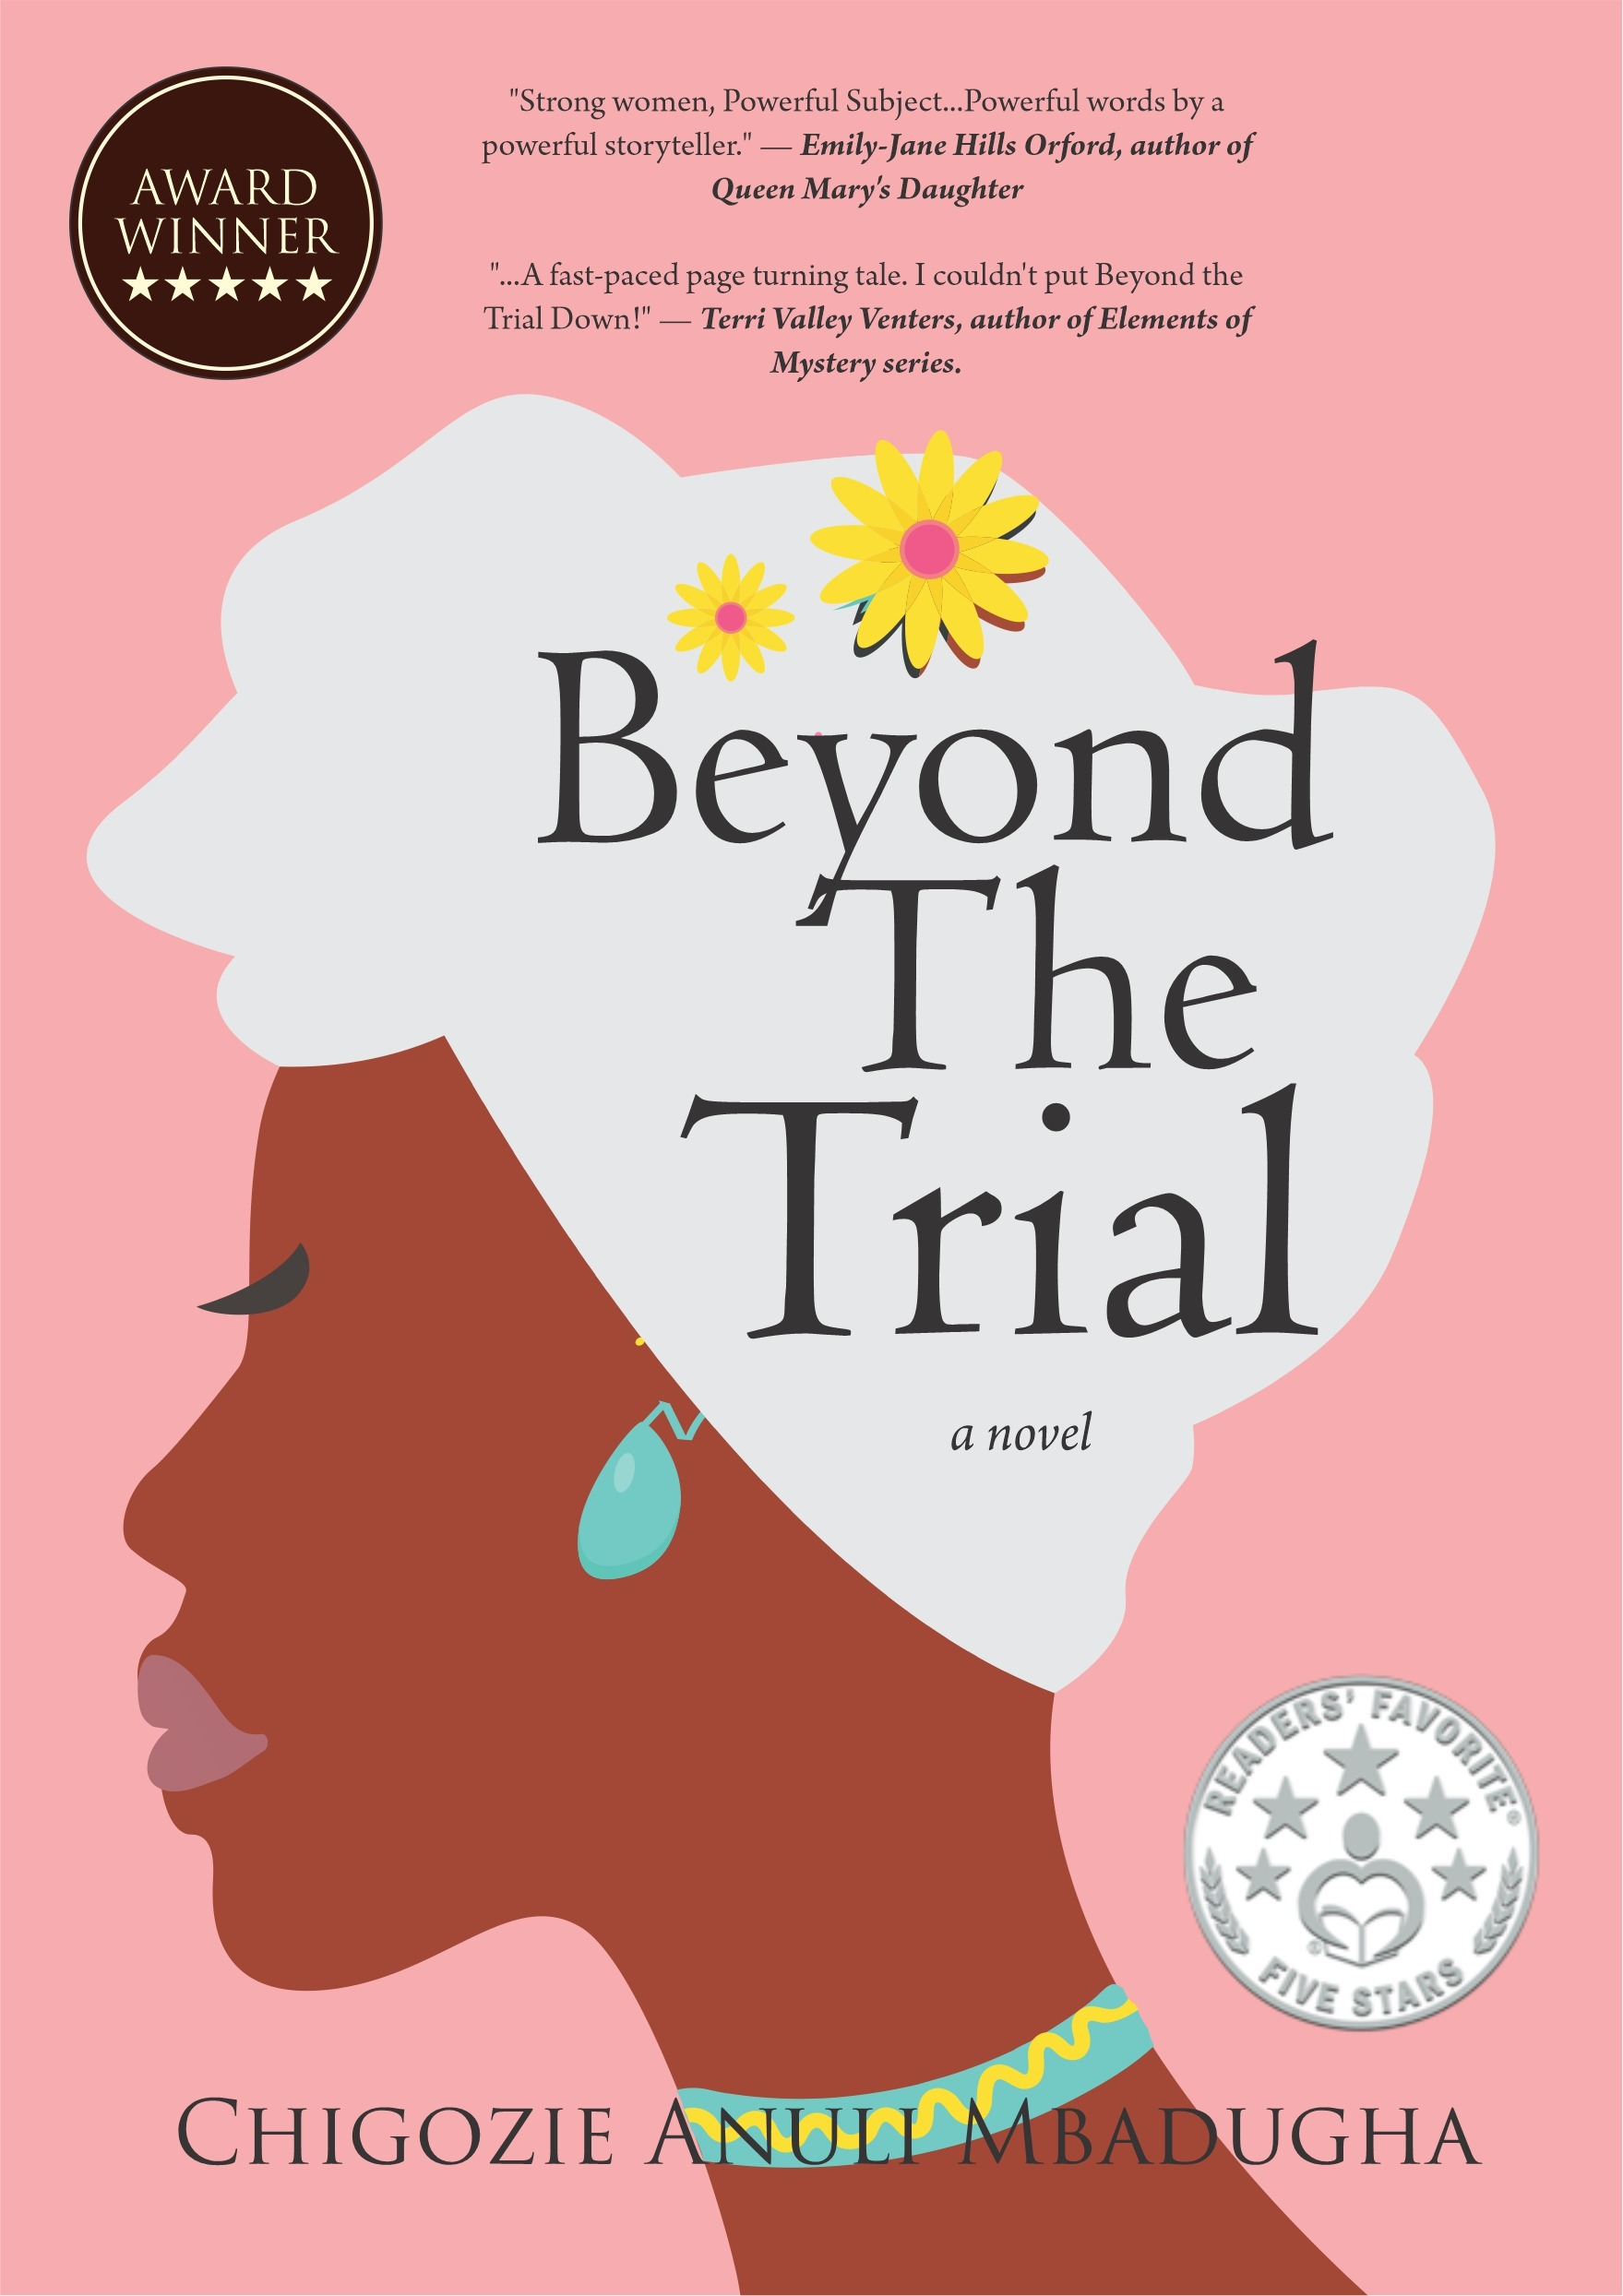 Beyond The Trial Cover front